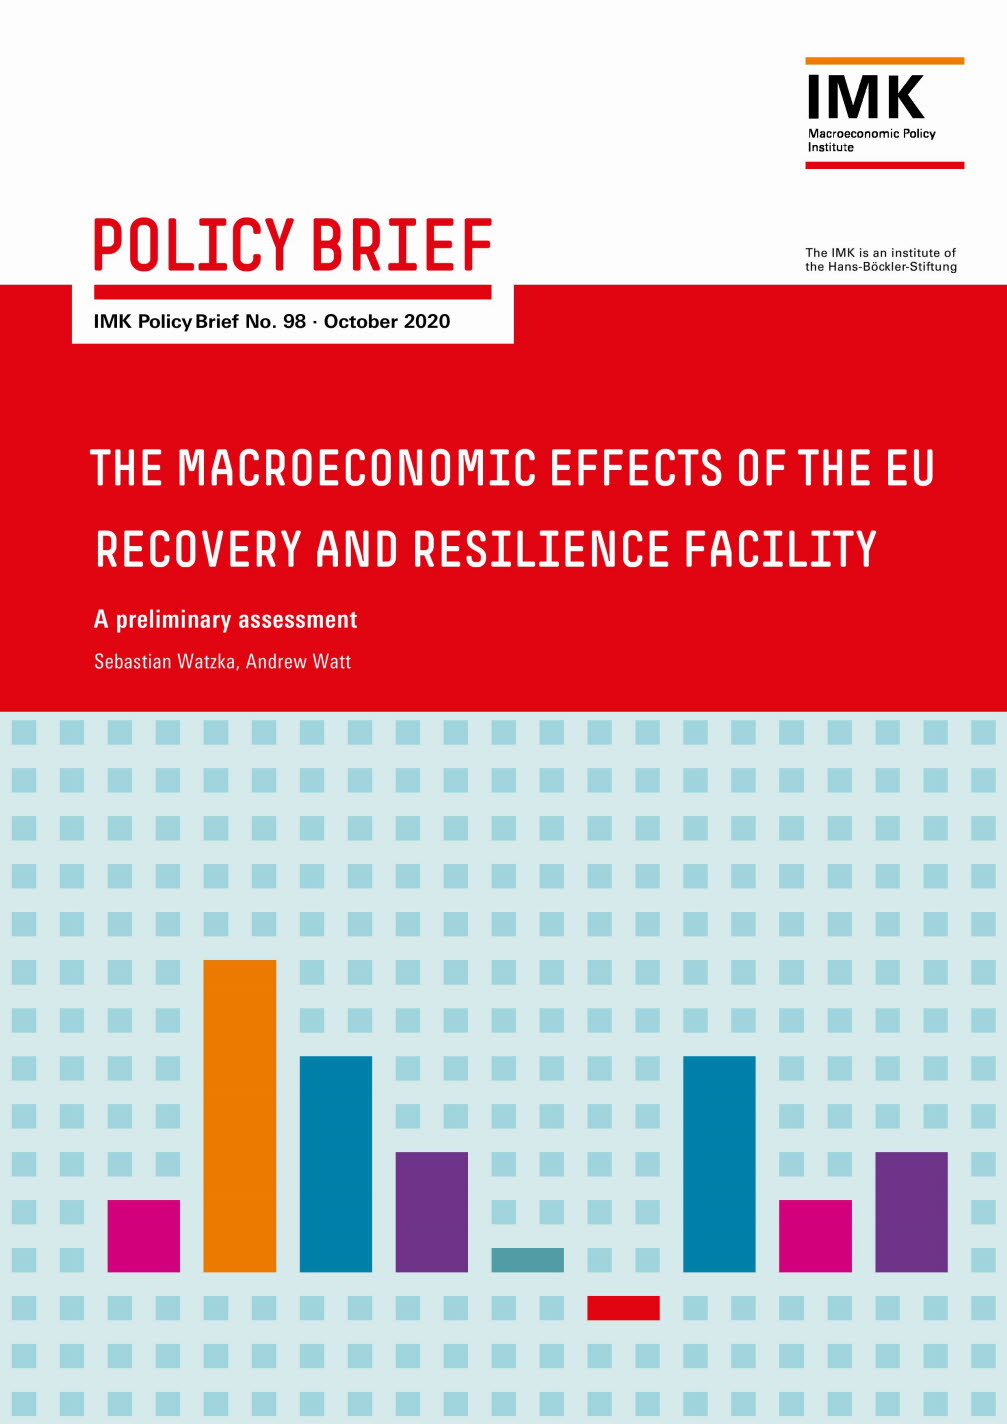 The macroeconomic effects of the EU Recovery and Resilience Facility